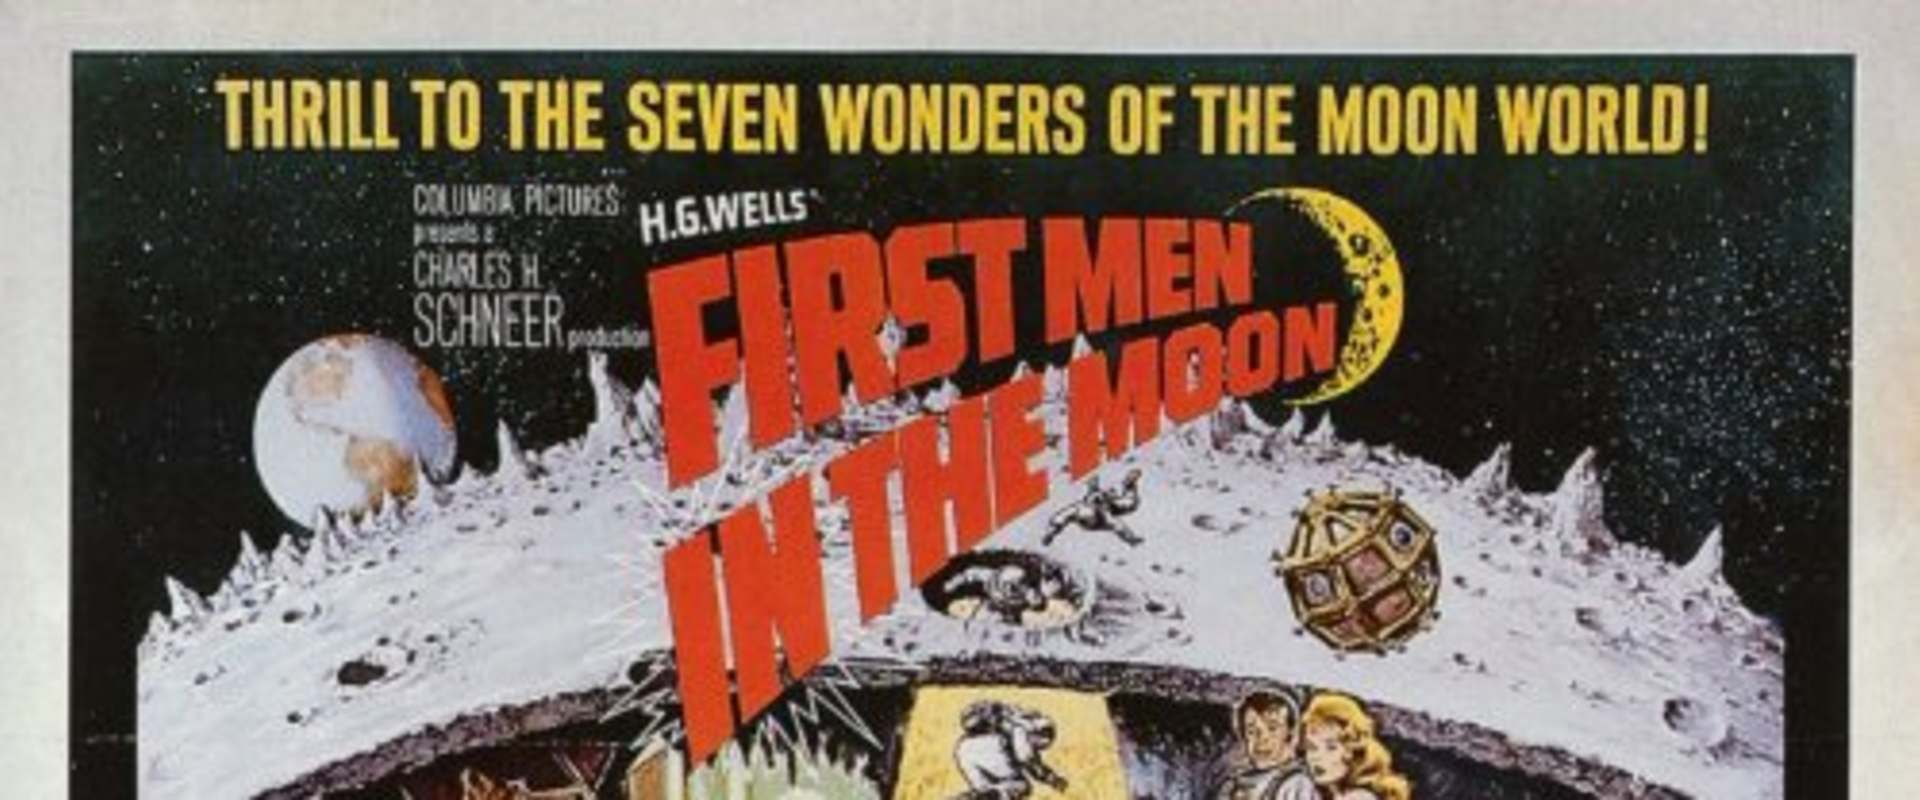 First Men in the Moon background 1